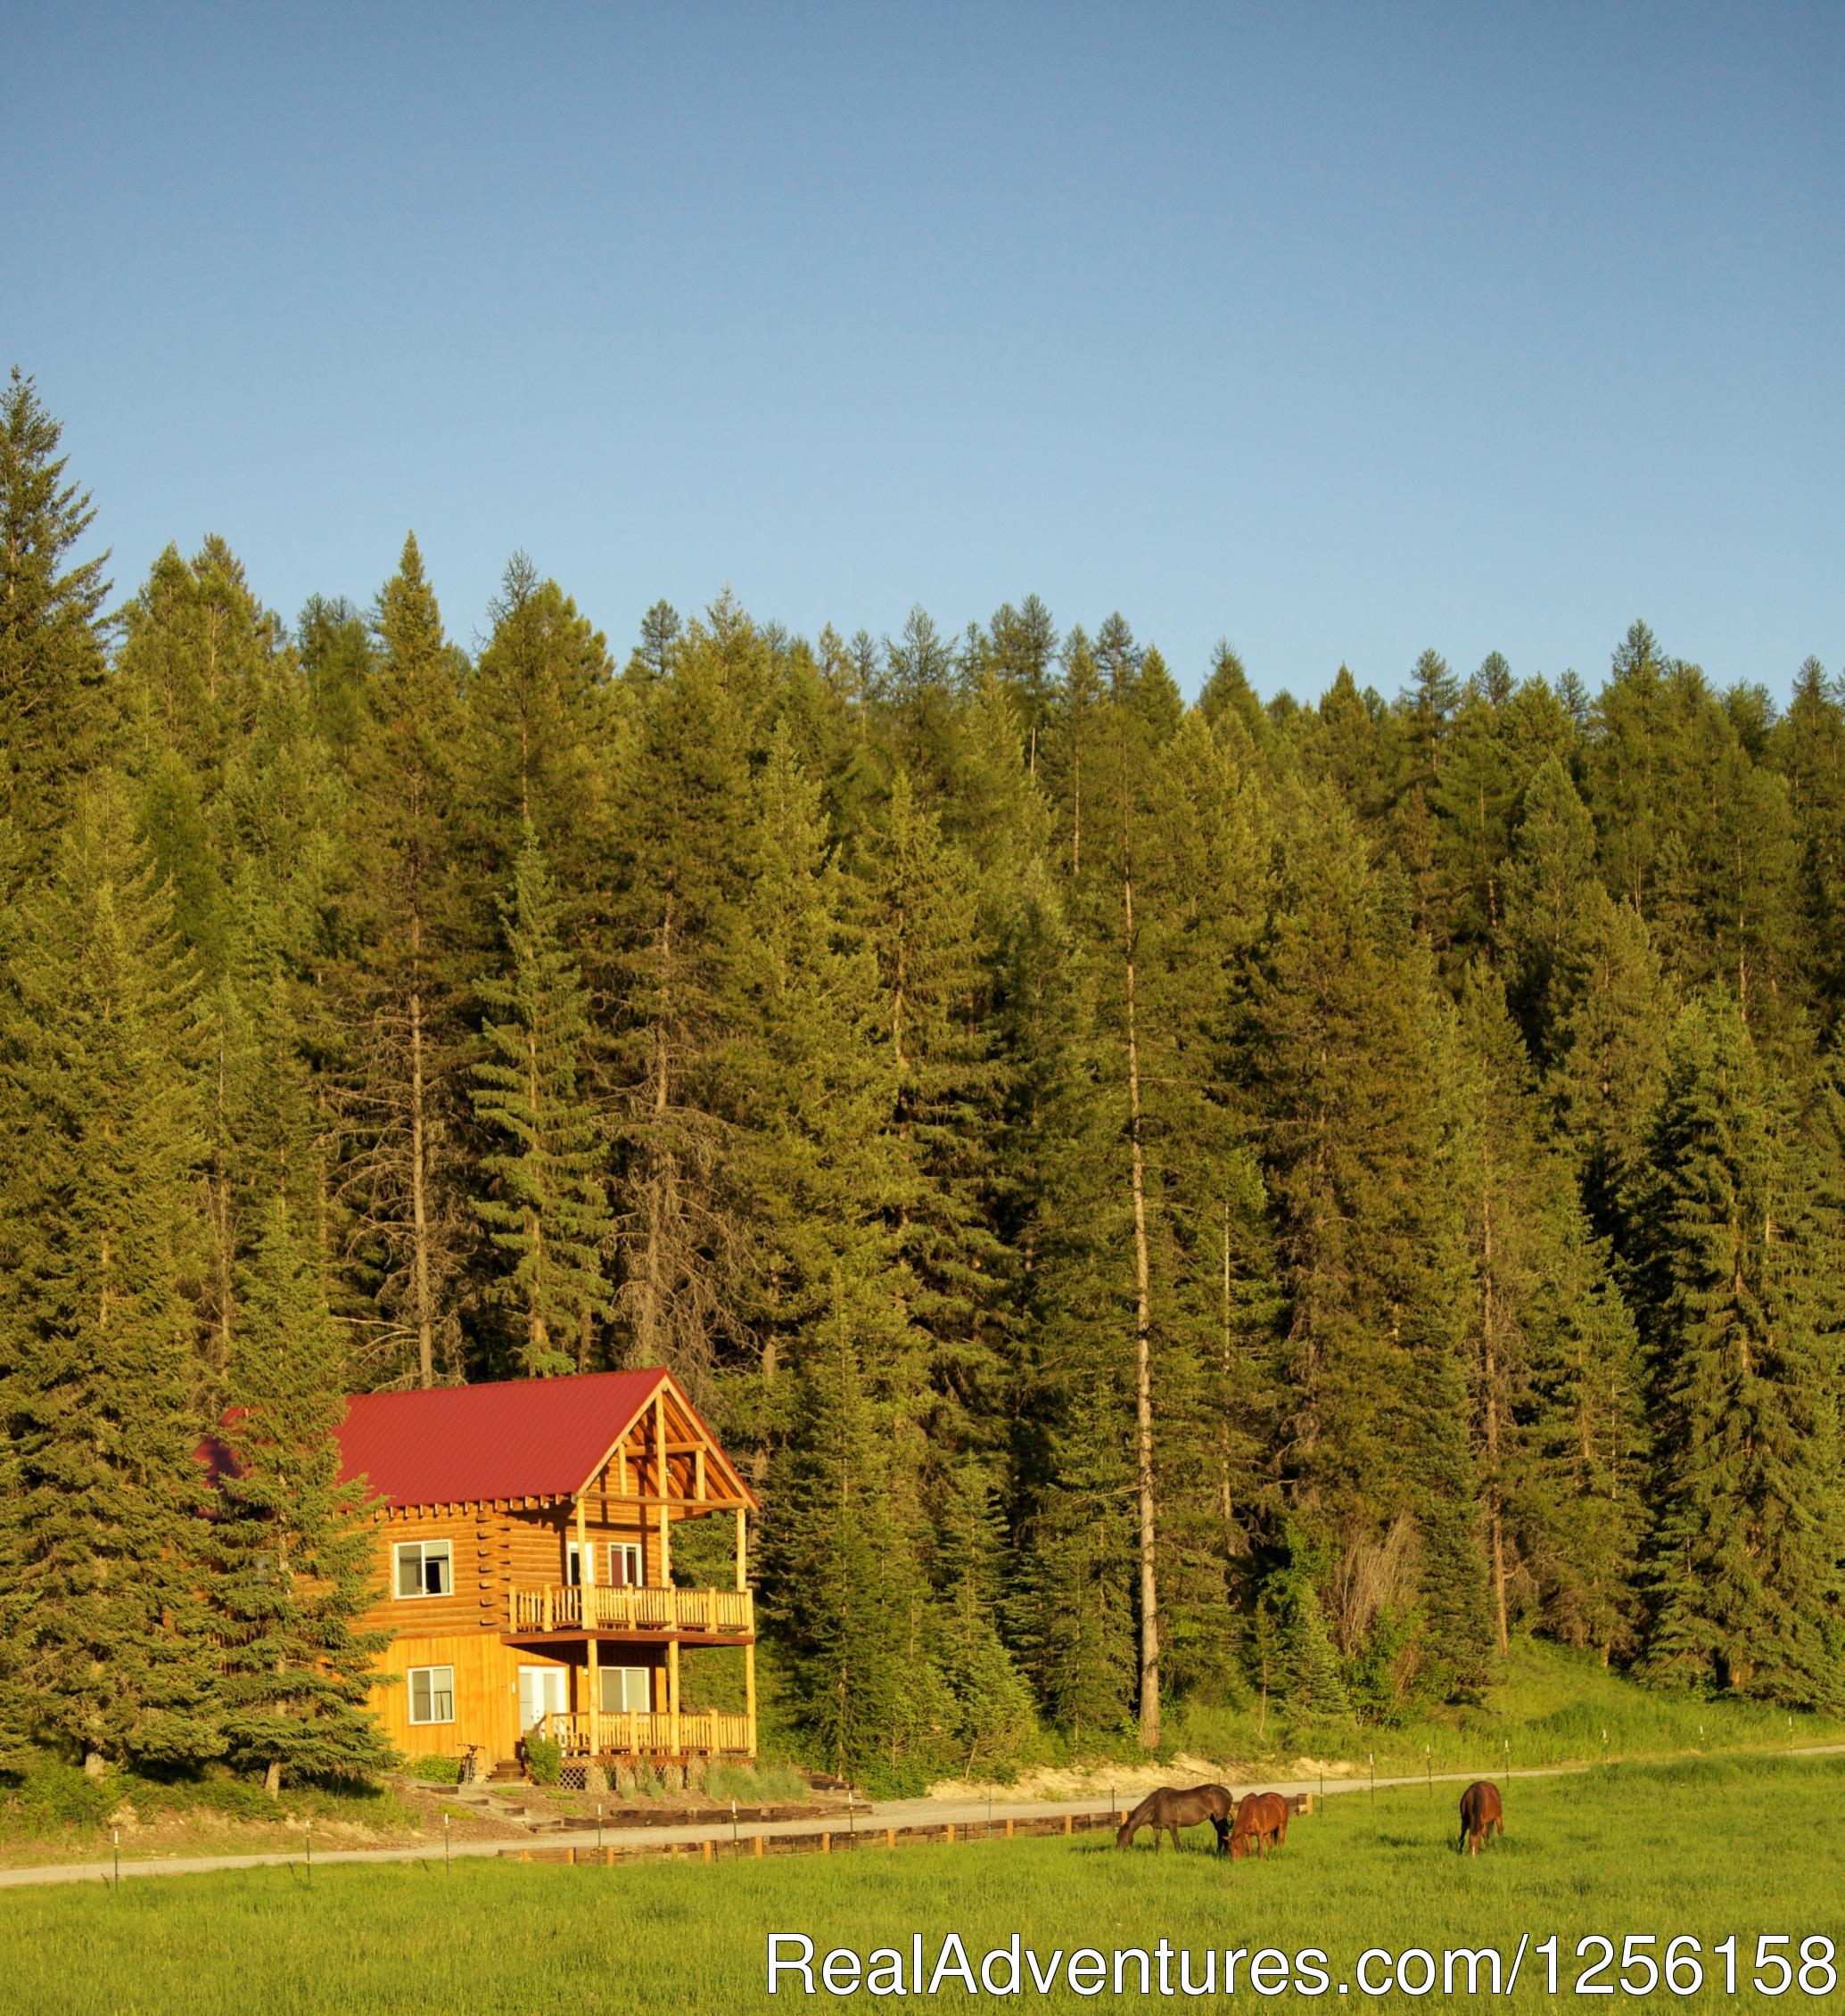 Cabin suites offer a rustic ambiance